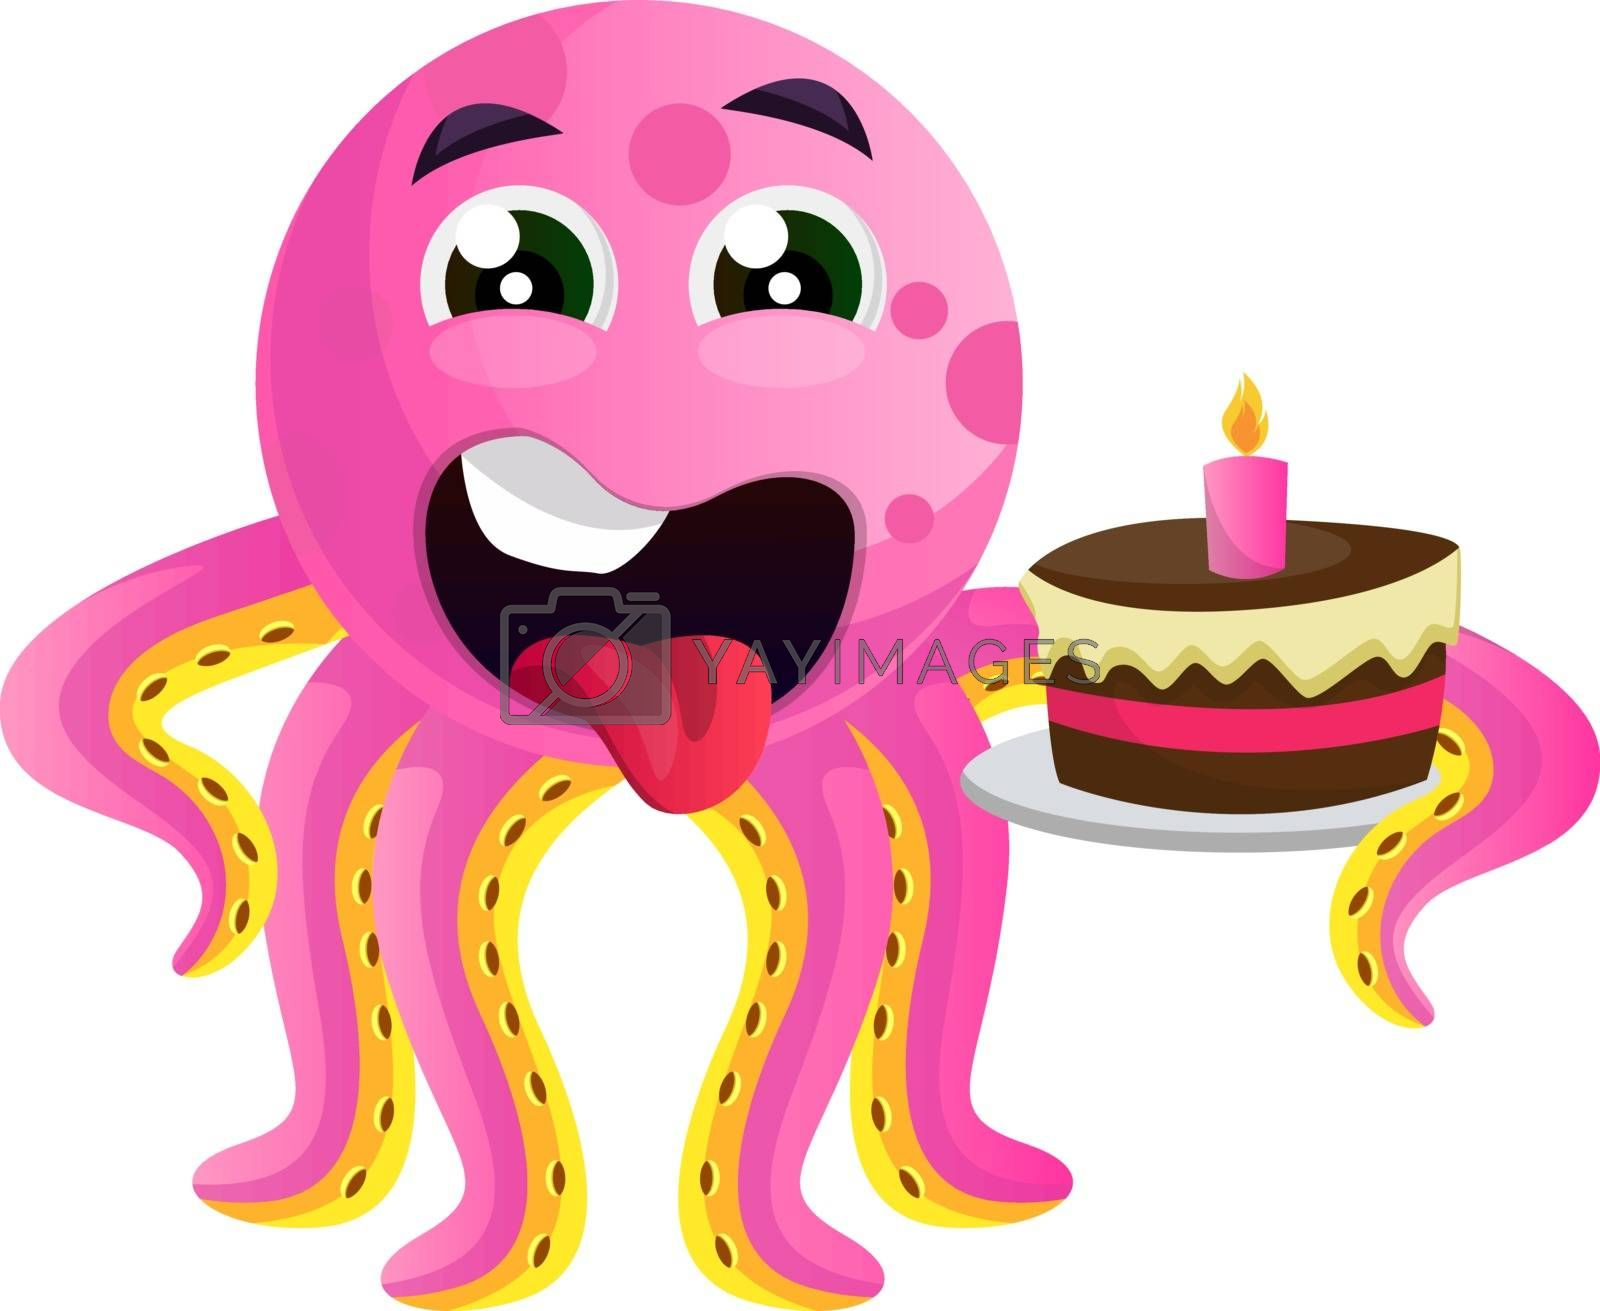 Royalty free image of Octopus with a birthday cake illustration vector on white backgr by Morphart